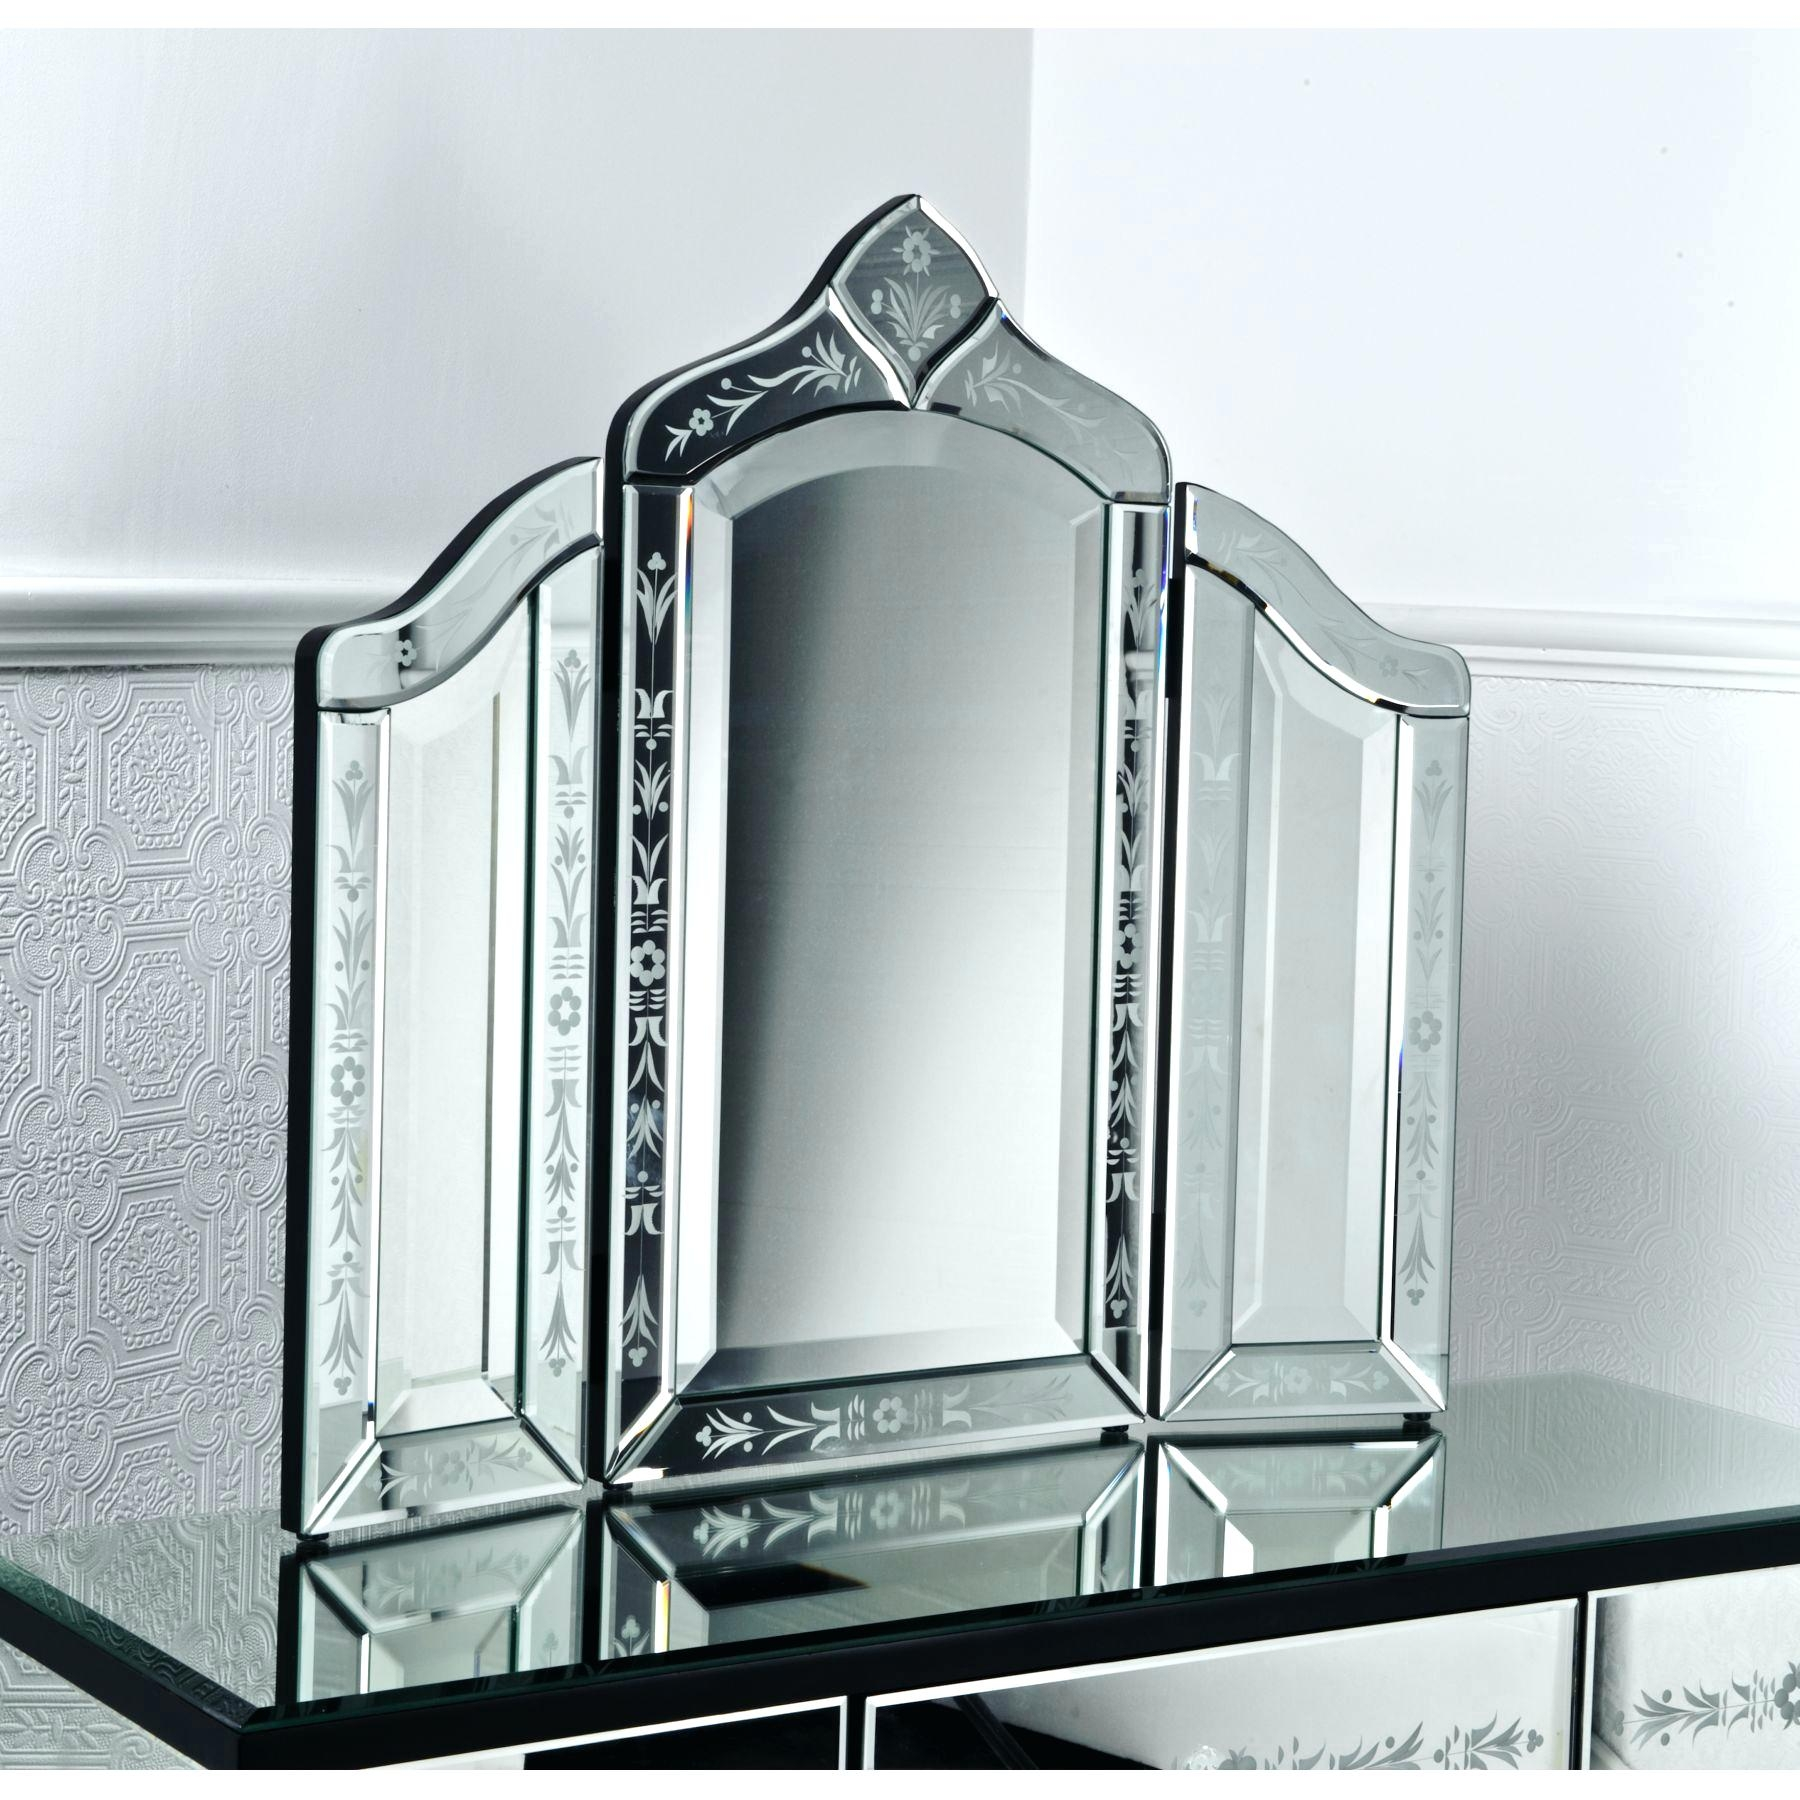 Venetian Style Dressing Table Mirror Silver Shopwiz With Regard To Venetian Dressing Table Mirrors (Image 14 of 15)